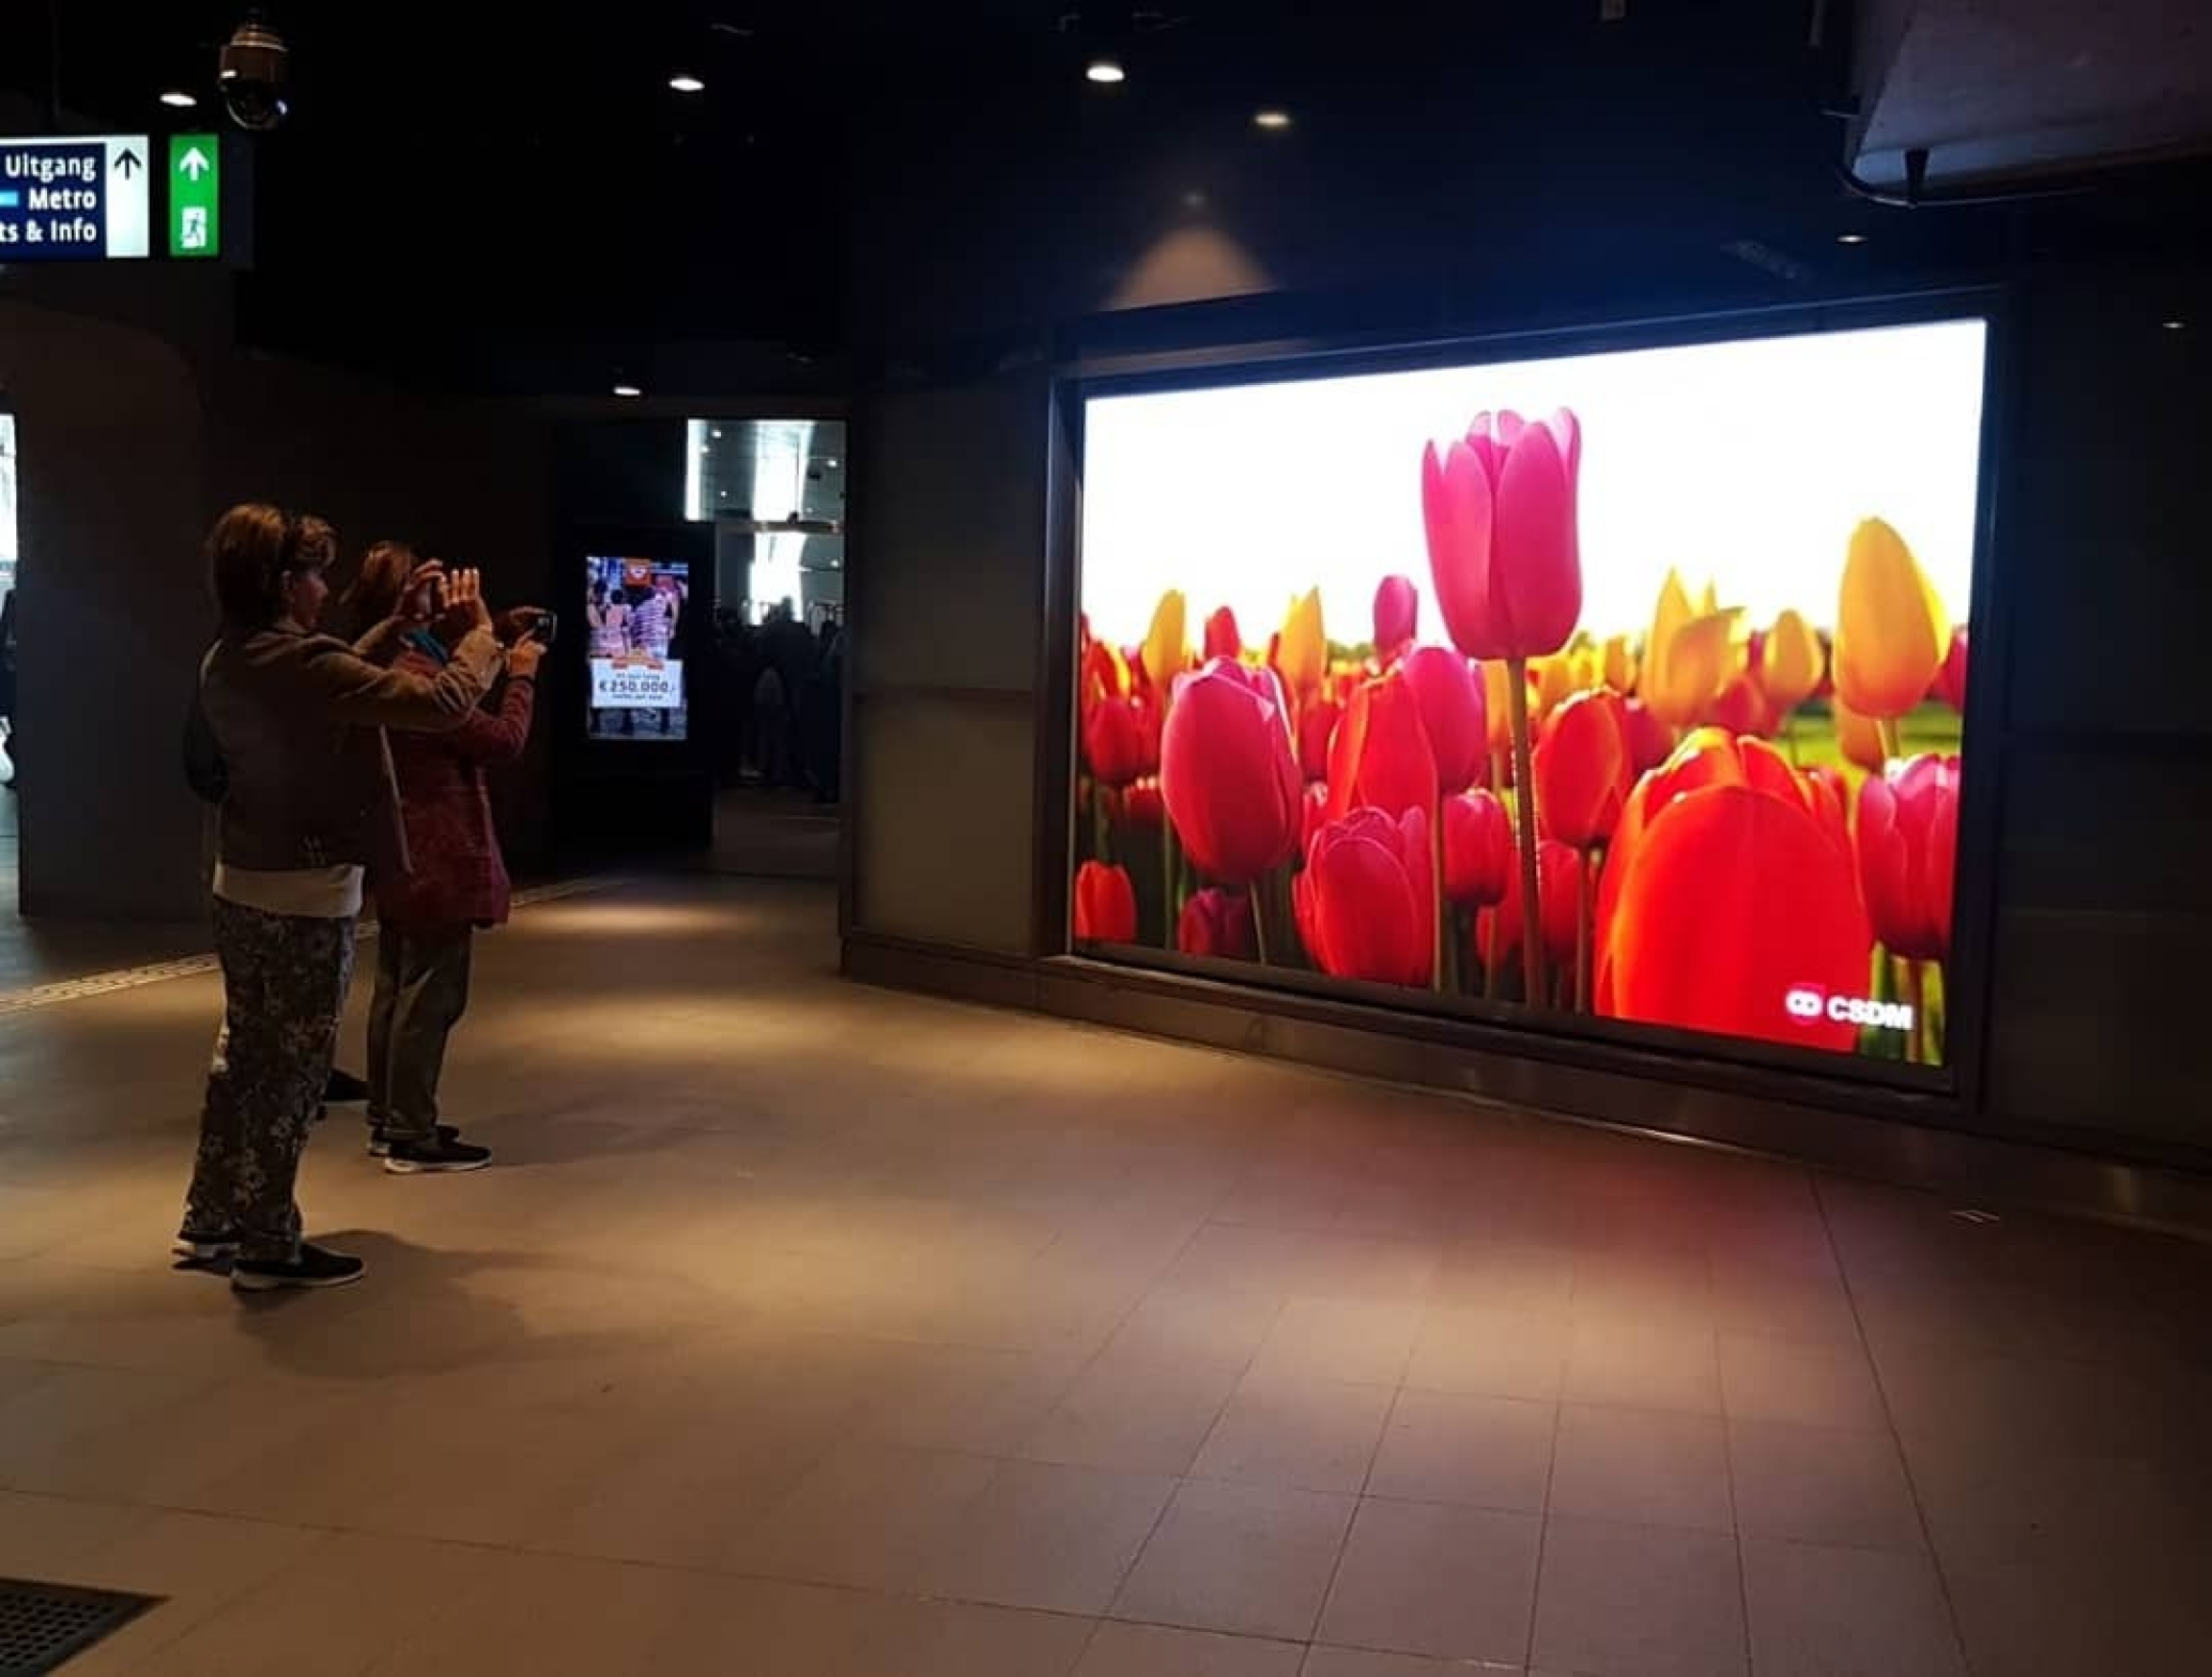 An ad for colorful tulips shines on a large-screen TV in a subway.